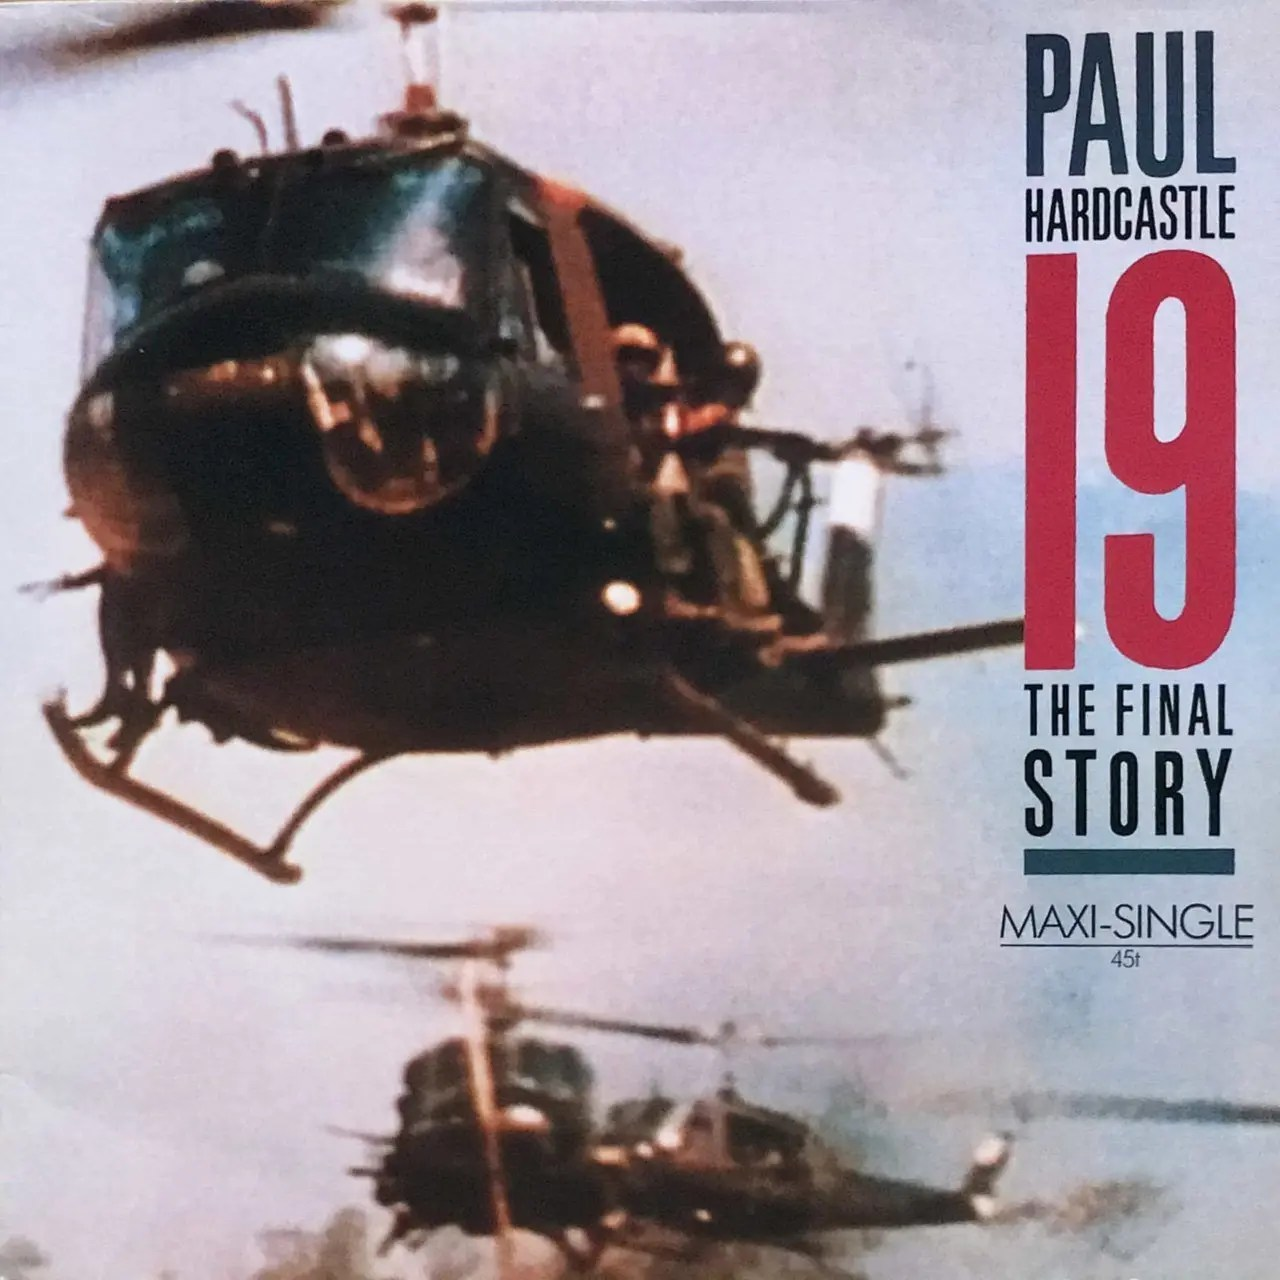 Paul Hardcastle - 19 The Final Storie